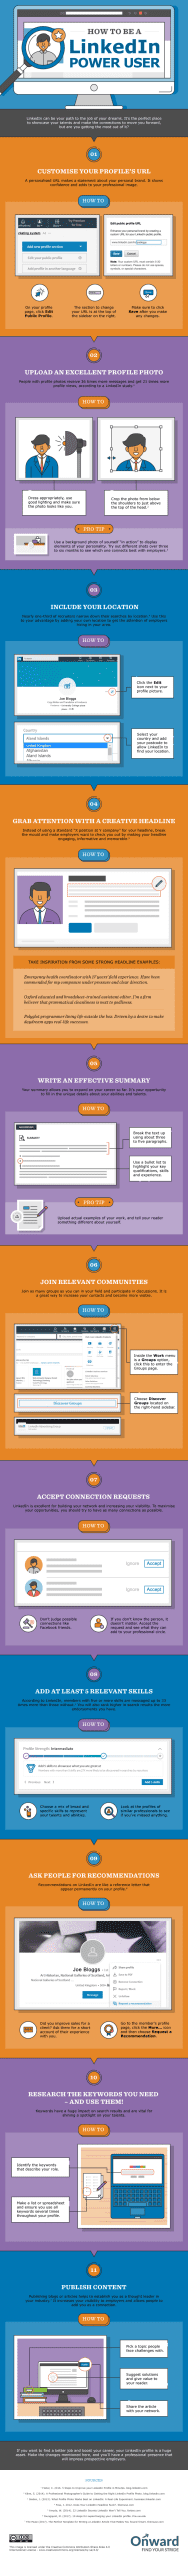 How to Be LinkedIn All-Star Infographic compressed